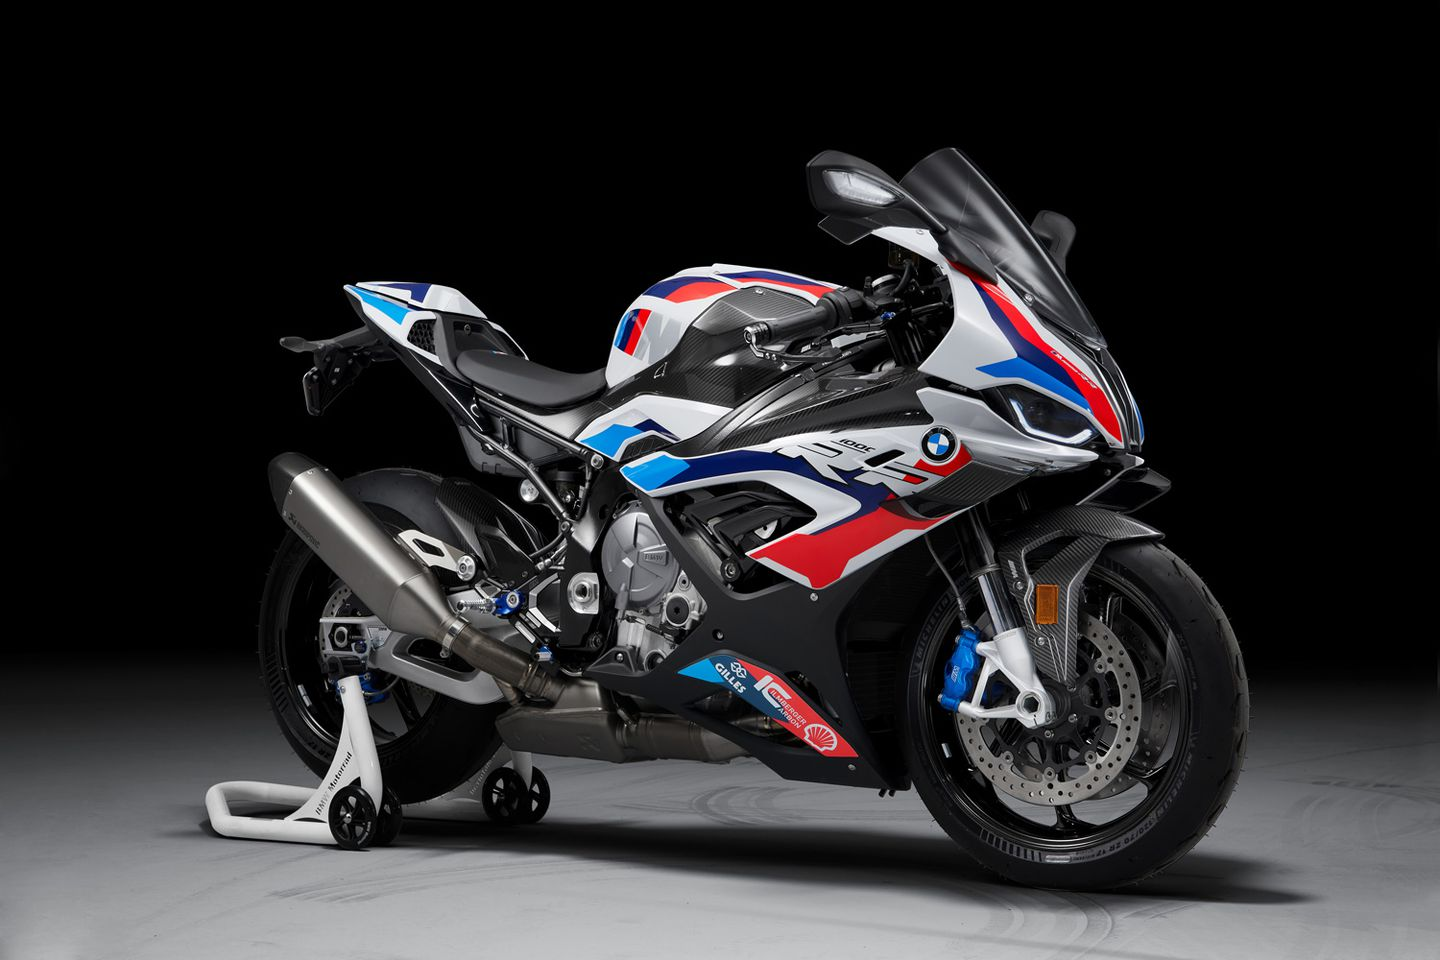 2021 BMW M 1000 RR First Look | Cycle World